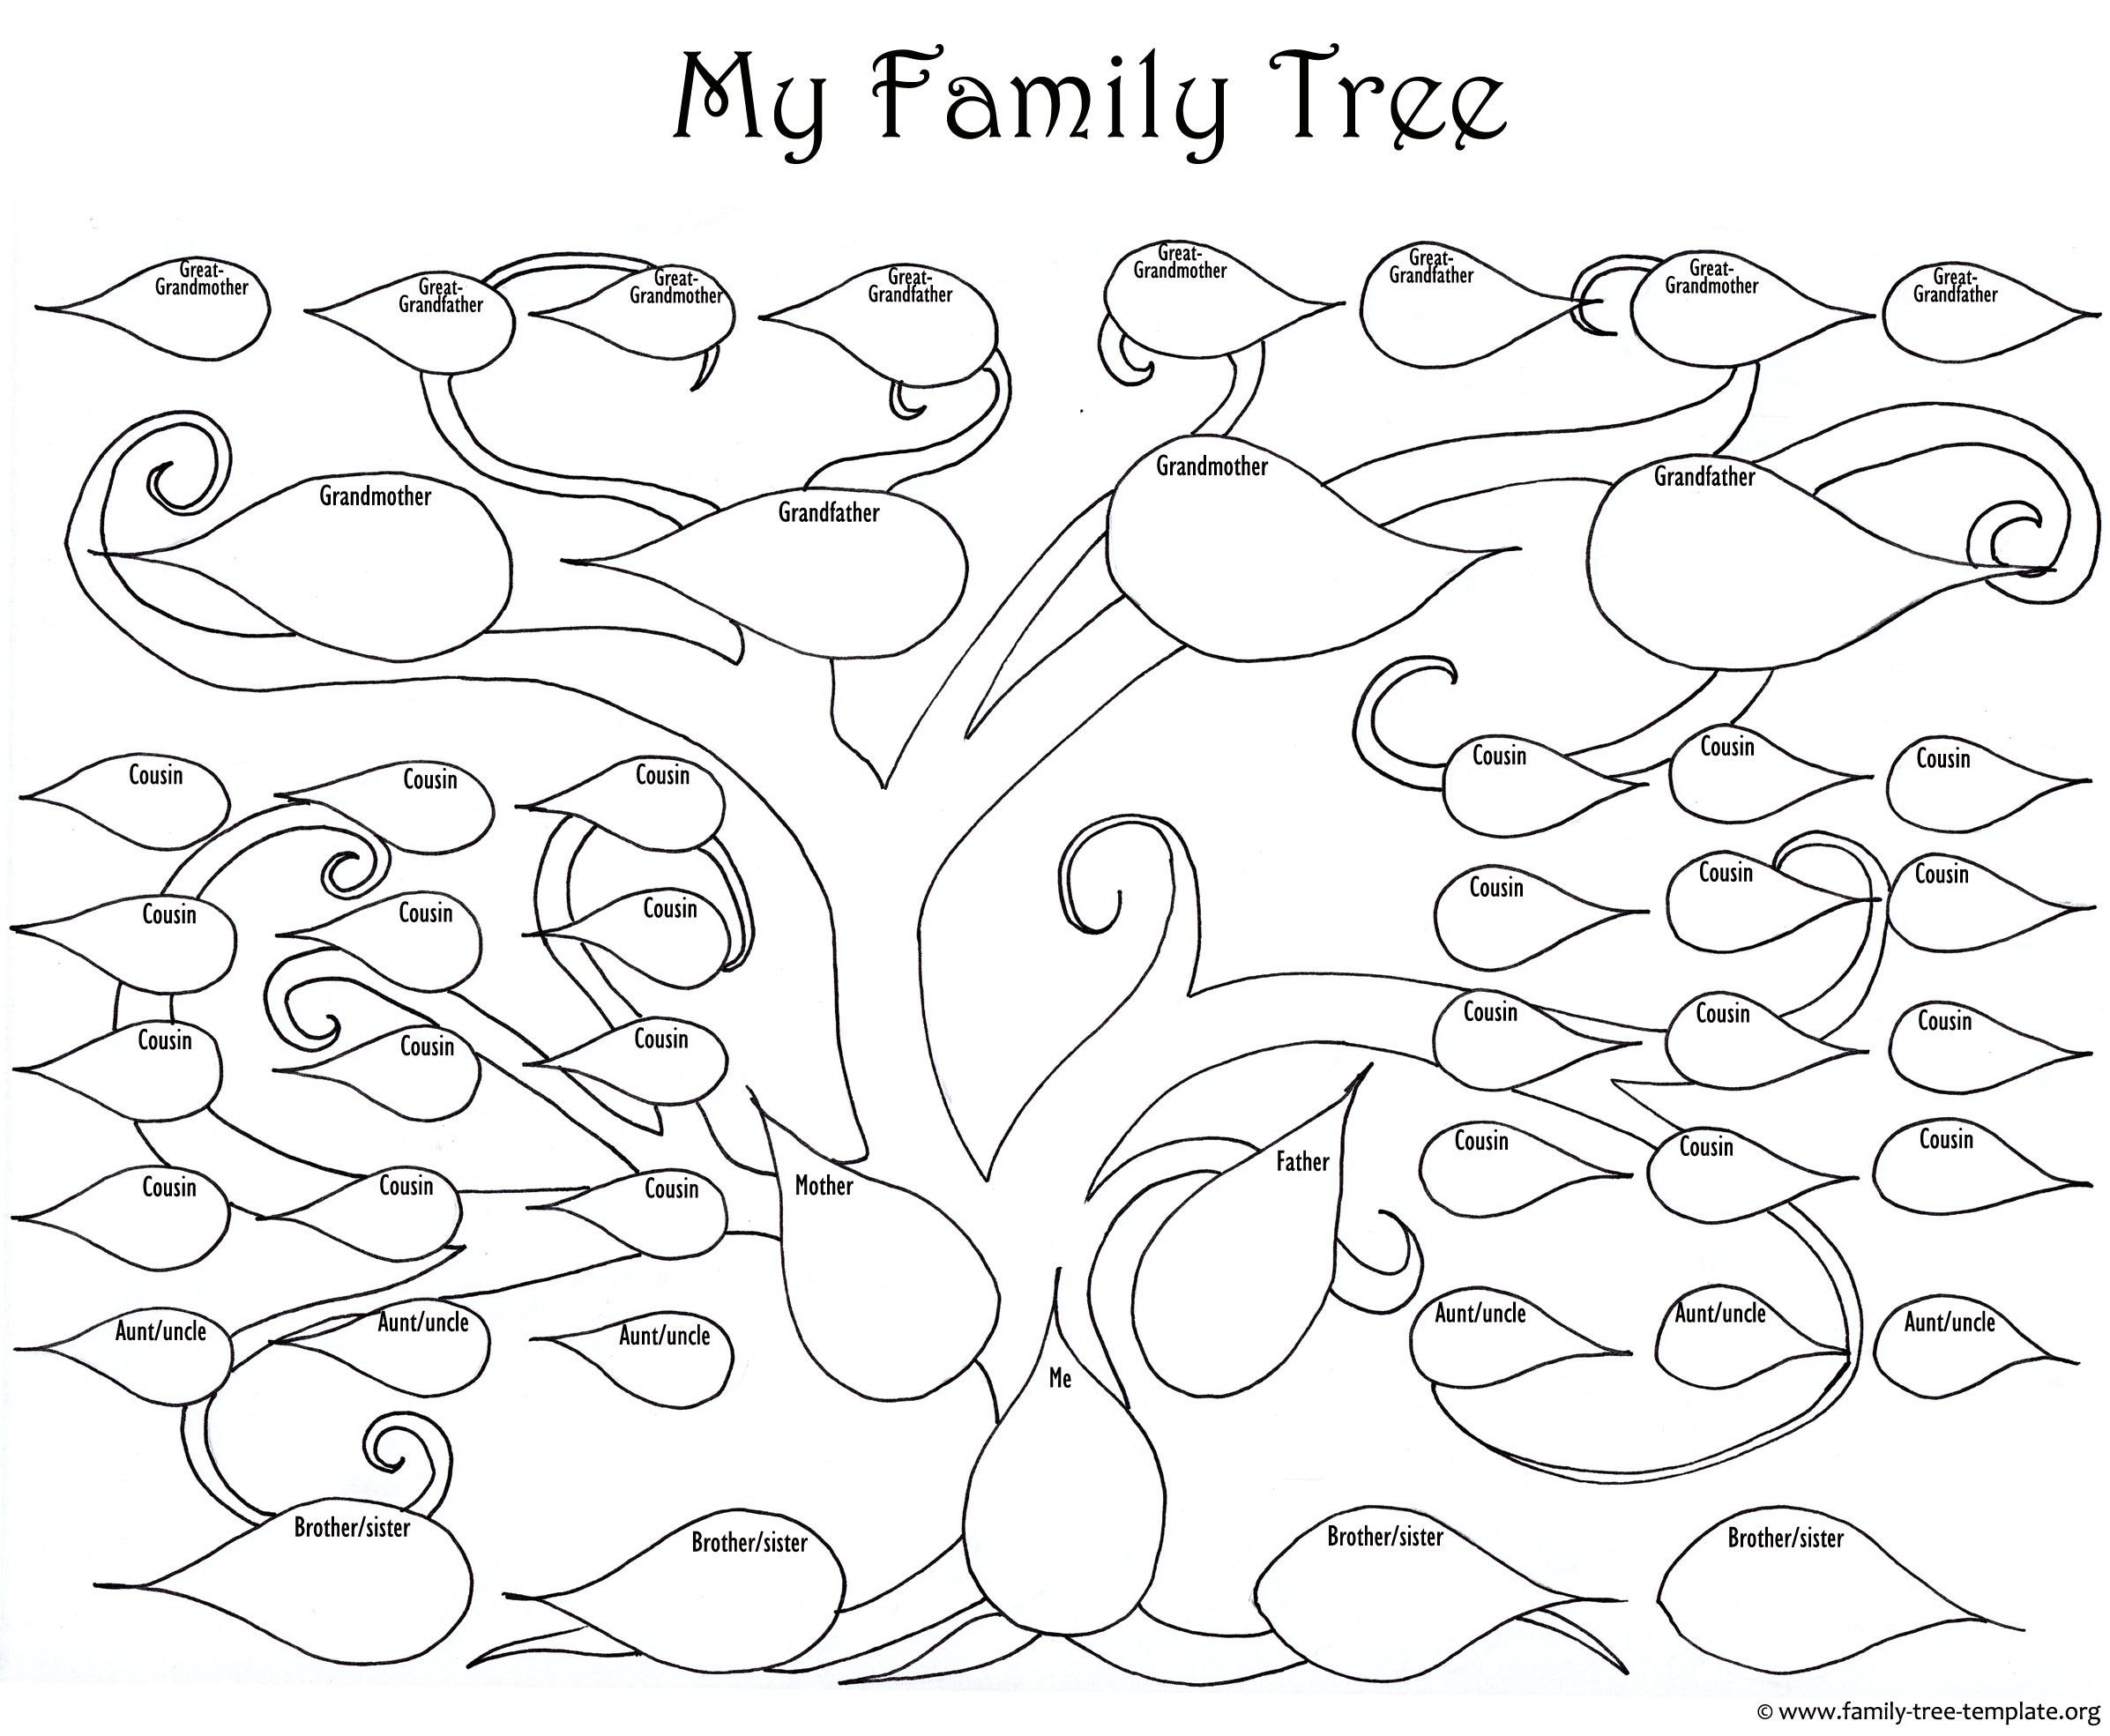 A Printable Blank Family Tree to Make Your Kids Genealogy Chart – Blank Family Tree Template